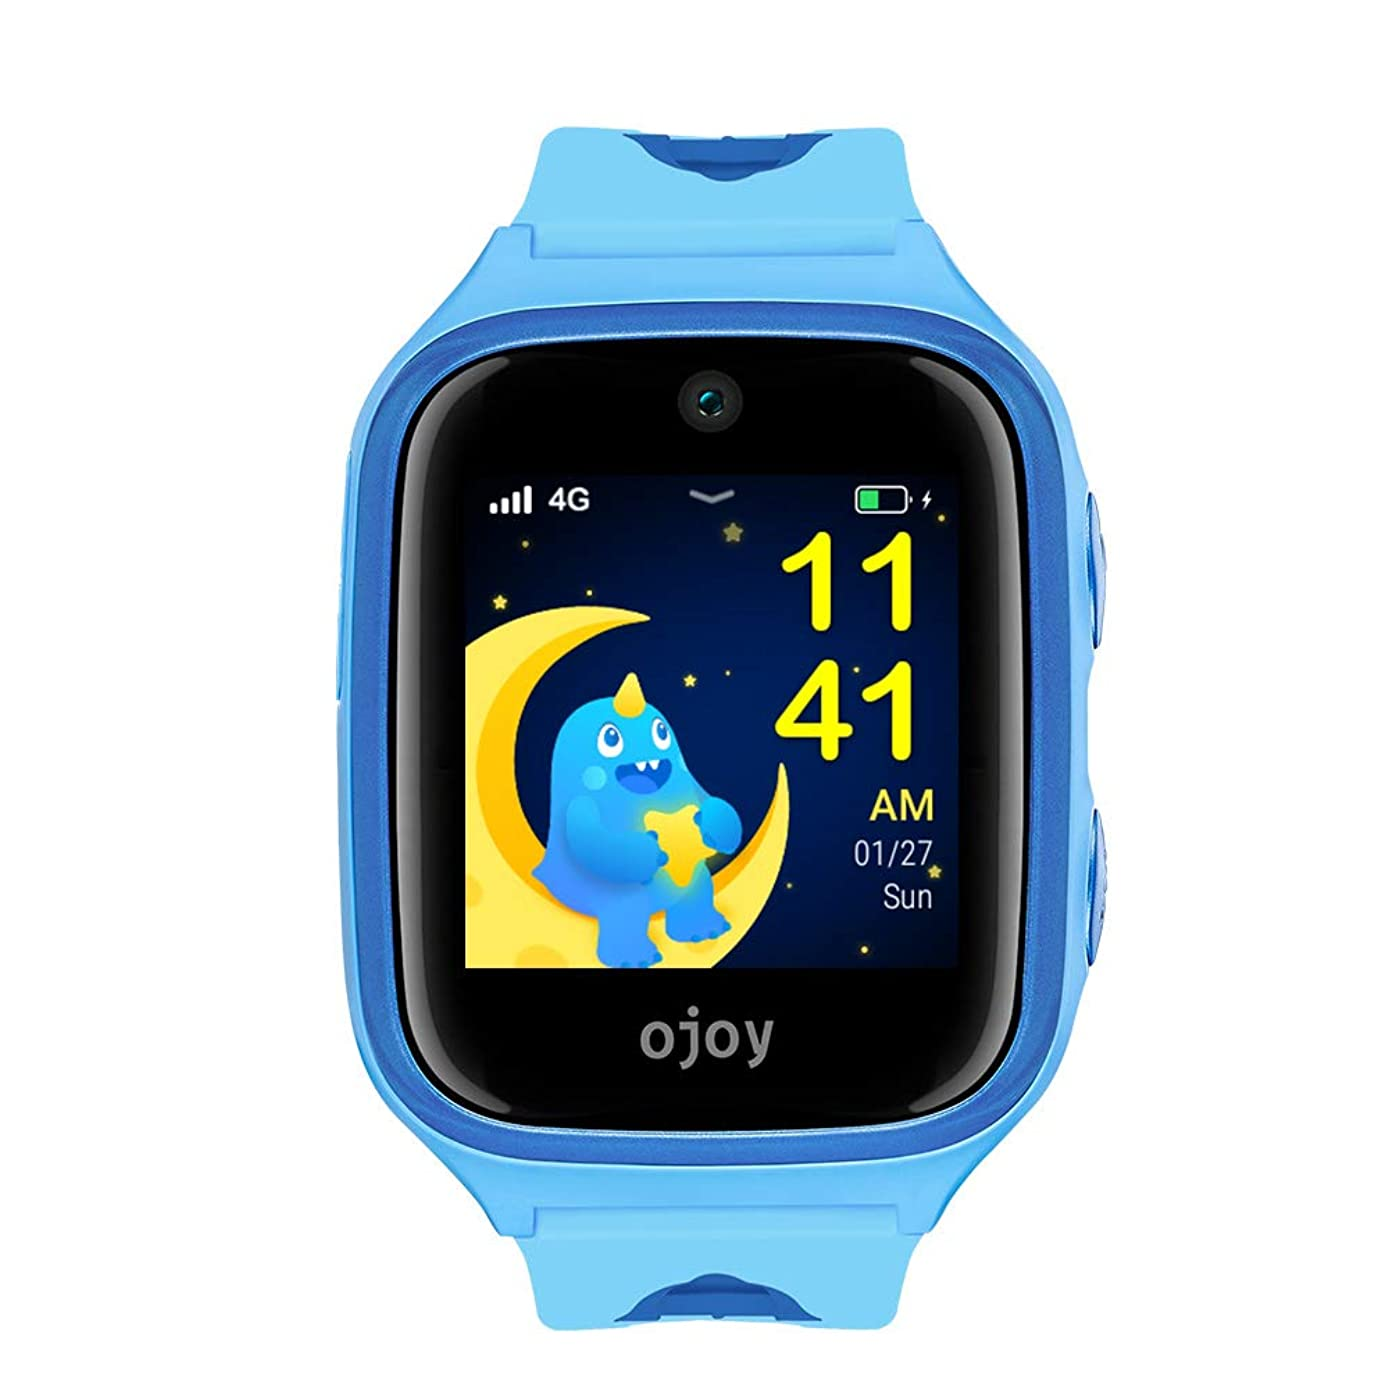 OJOY A1 Kids Smart Watch   IP68 Waterproof Smart Watch for Kids   4G LTE Watches for Boys and Girls   Safety Gizmo Watch for Kids   Kids GPS Tracker   with iOS & Android App (Blue) - US Warranty